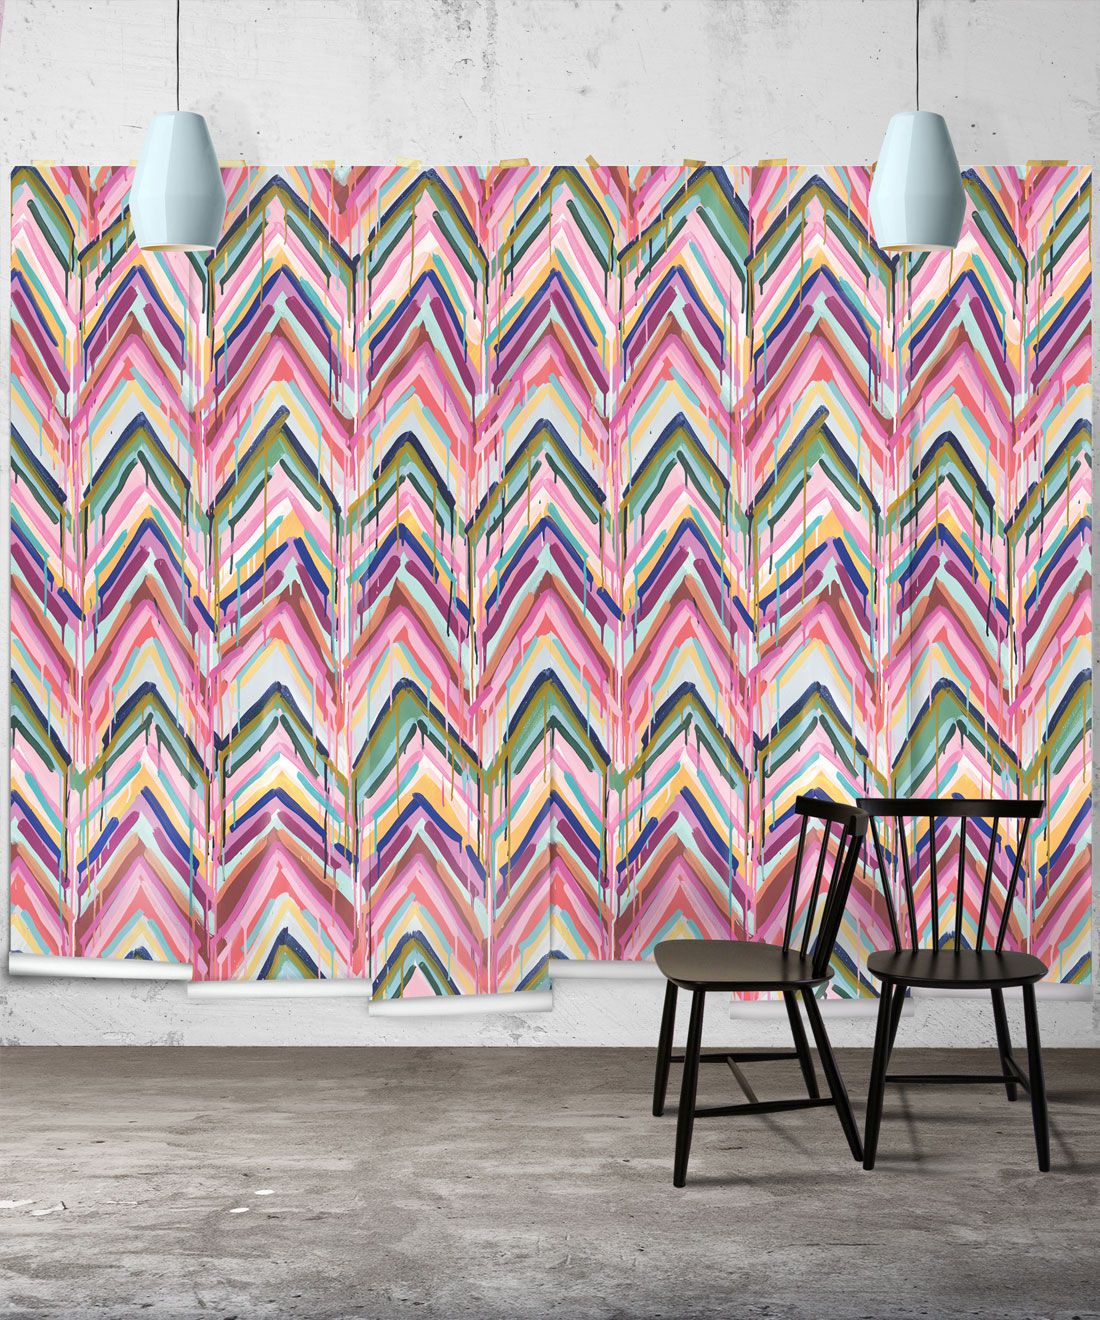 Crossroads Wallpaper • Colorful Painterly Wallpaper • Tiff Manuell • Chevron Wallpaper • Wide Insitu